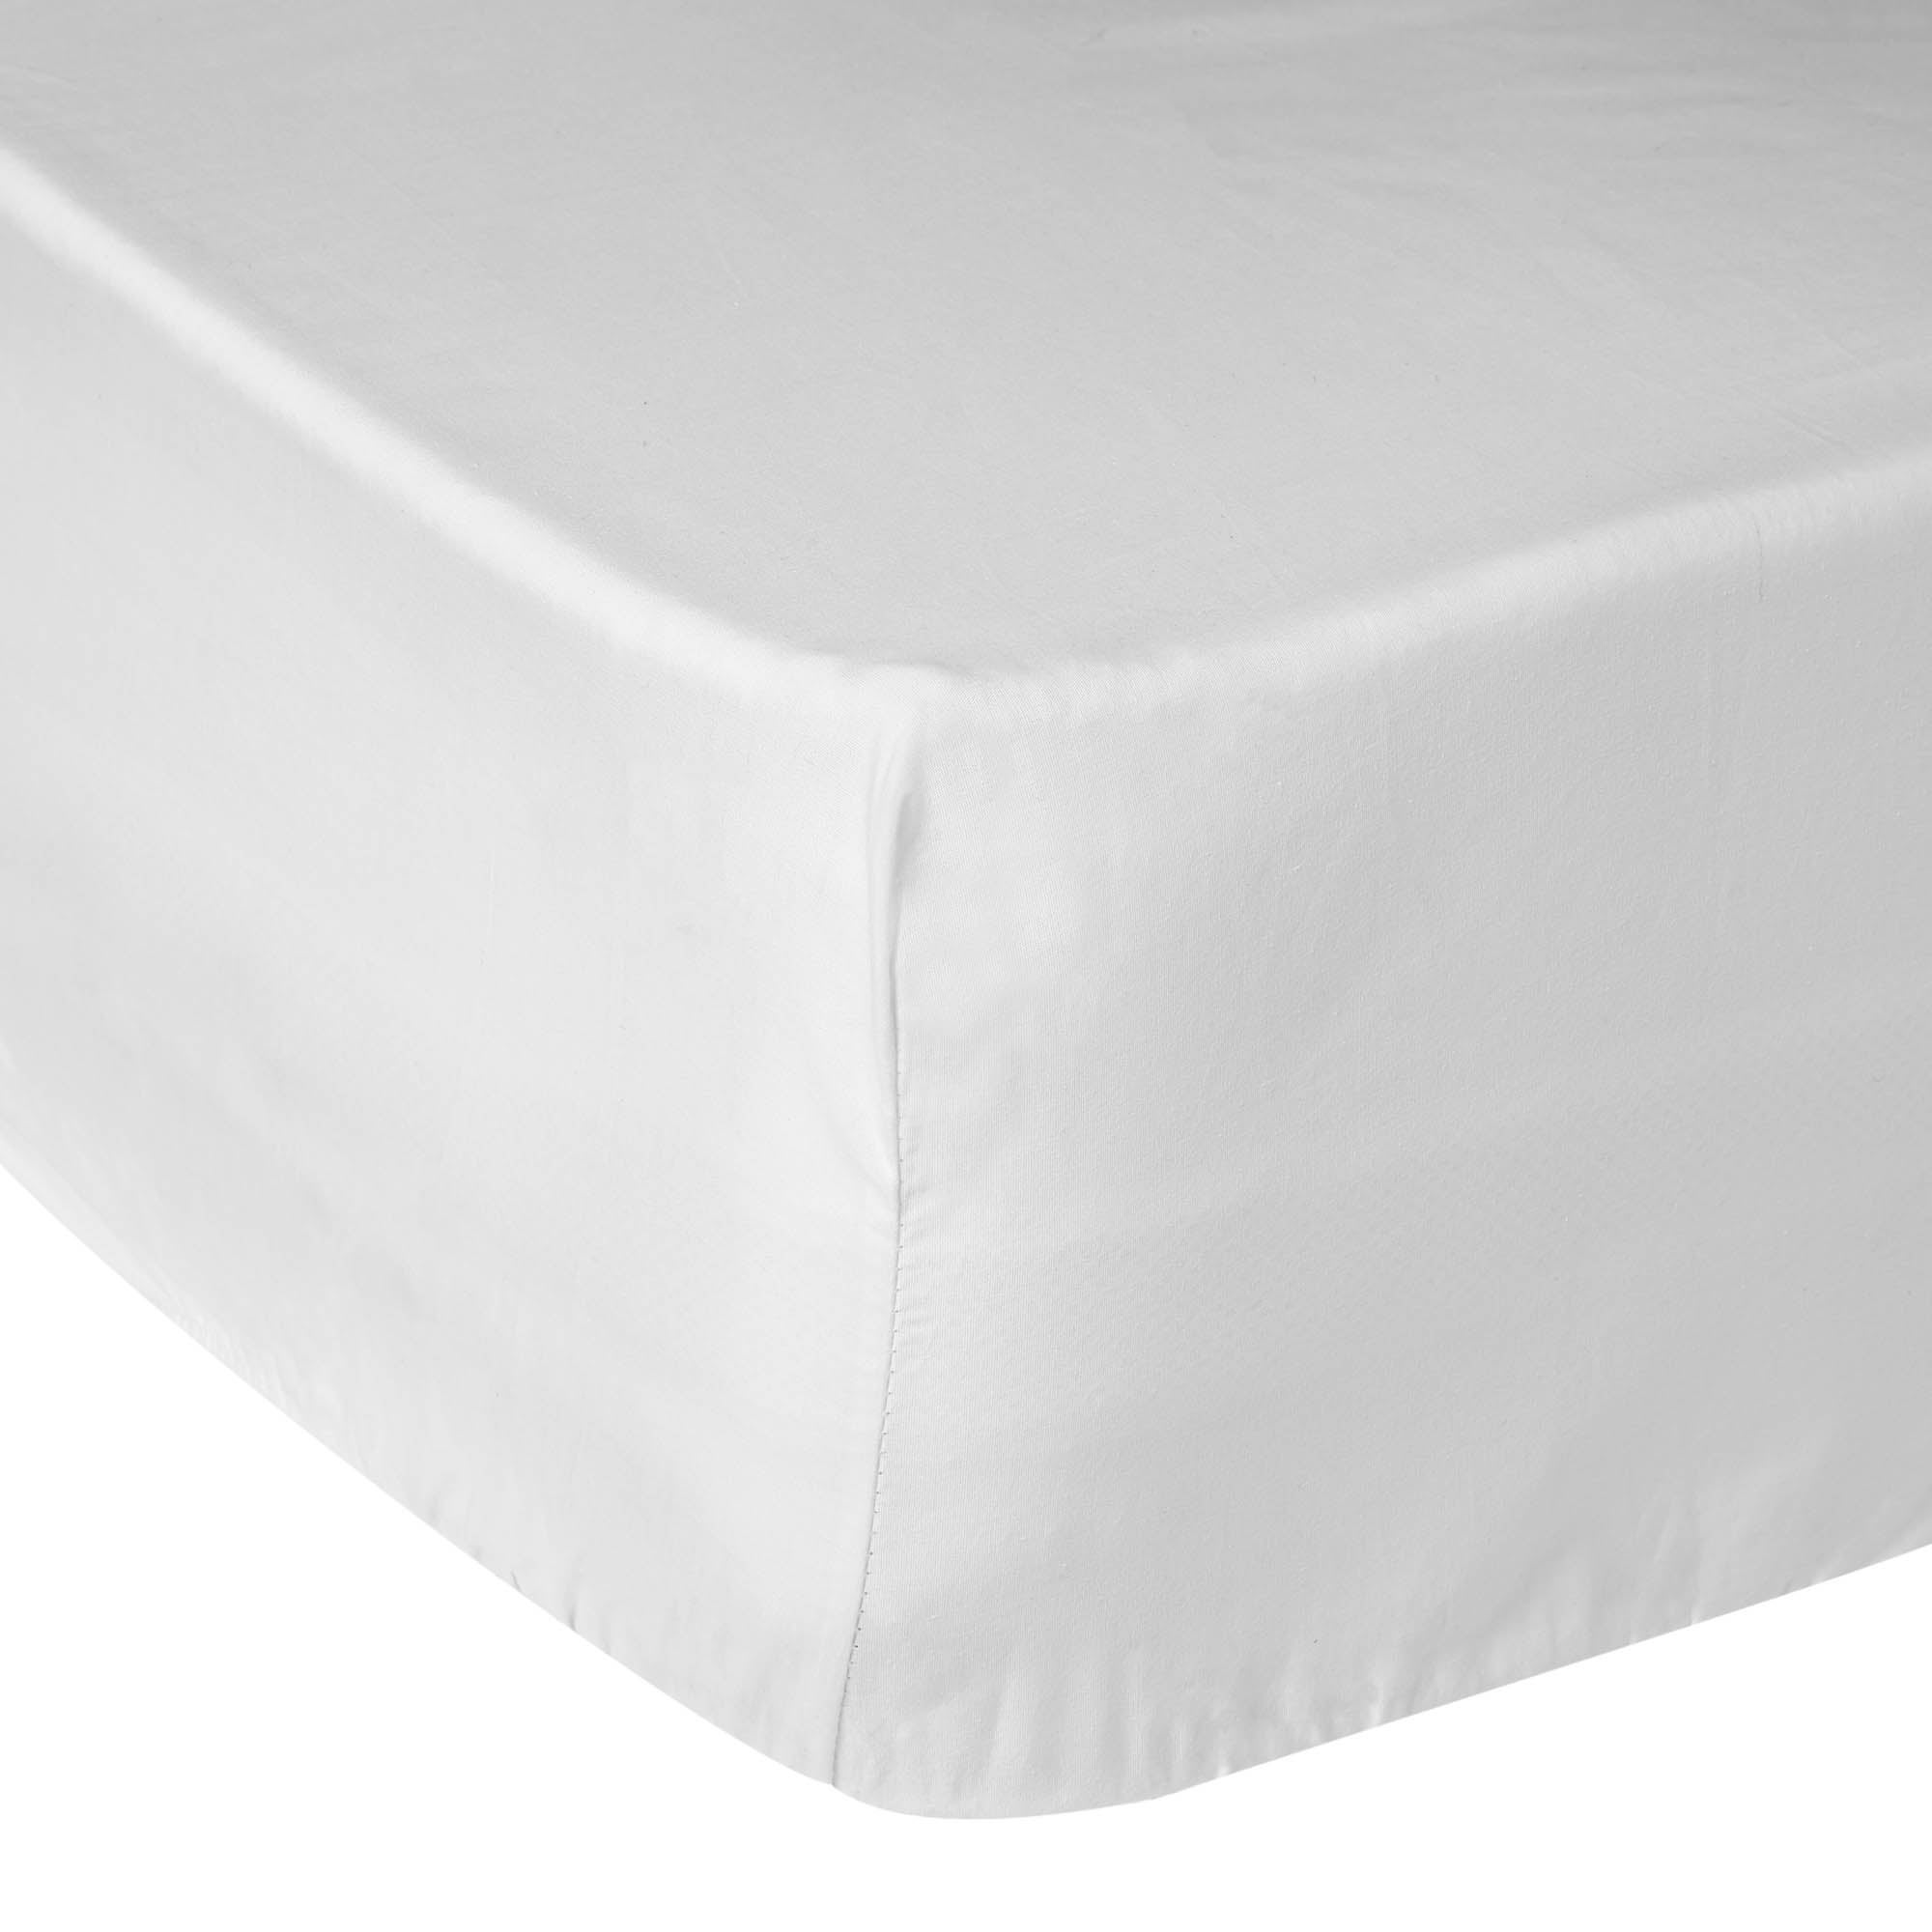 Image of 5A Fifth Avenue 300 Thread Count Modal White Fitted Sheet Fresh White